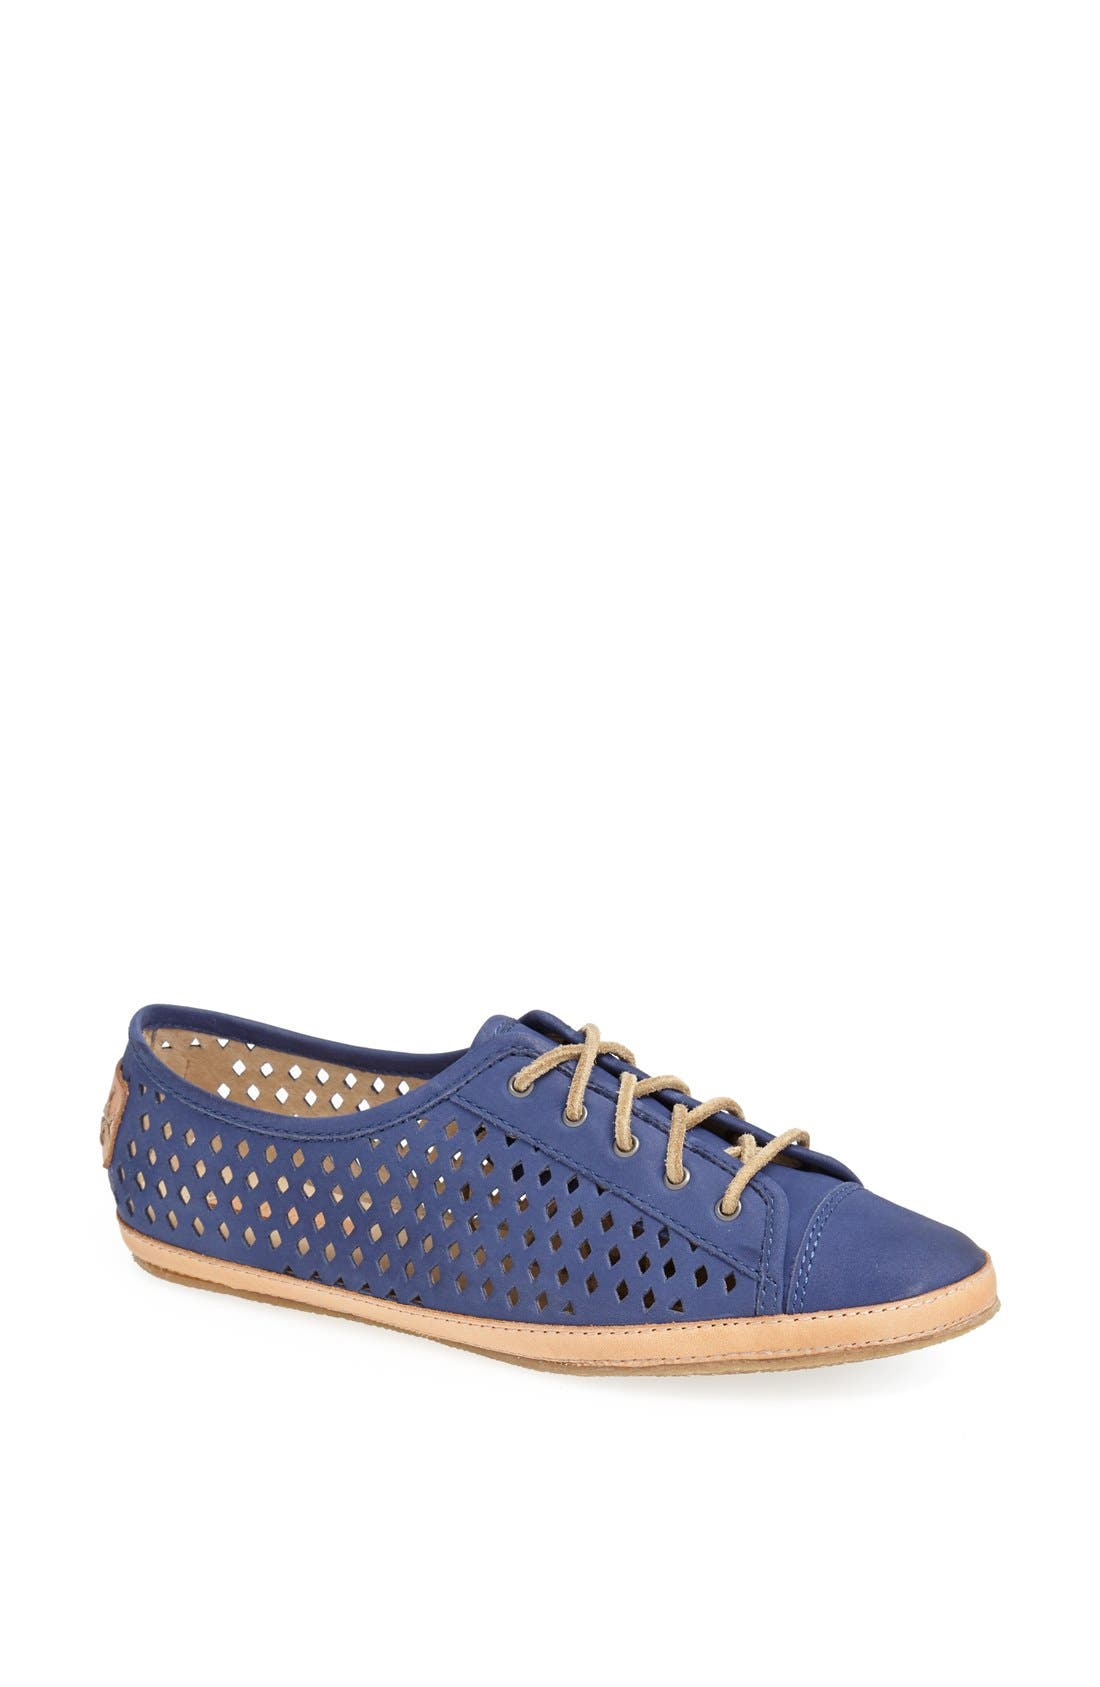 Alternate Image 1 Selected - Frye 'Teagan Low' Perforated Leather Lace-Up